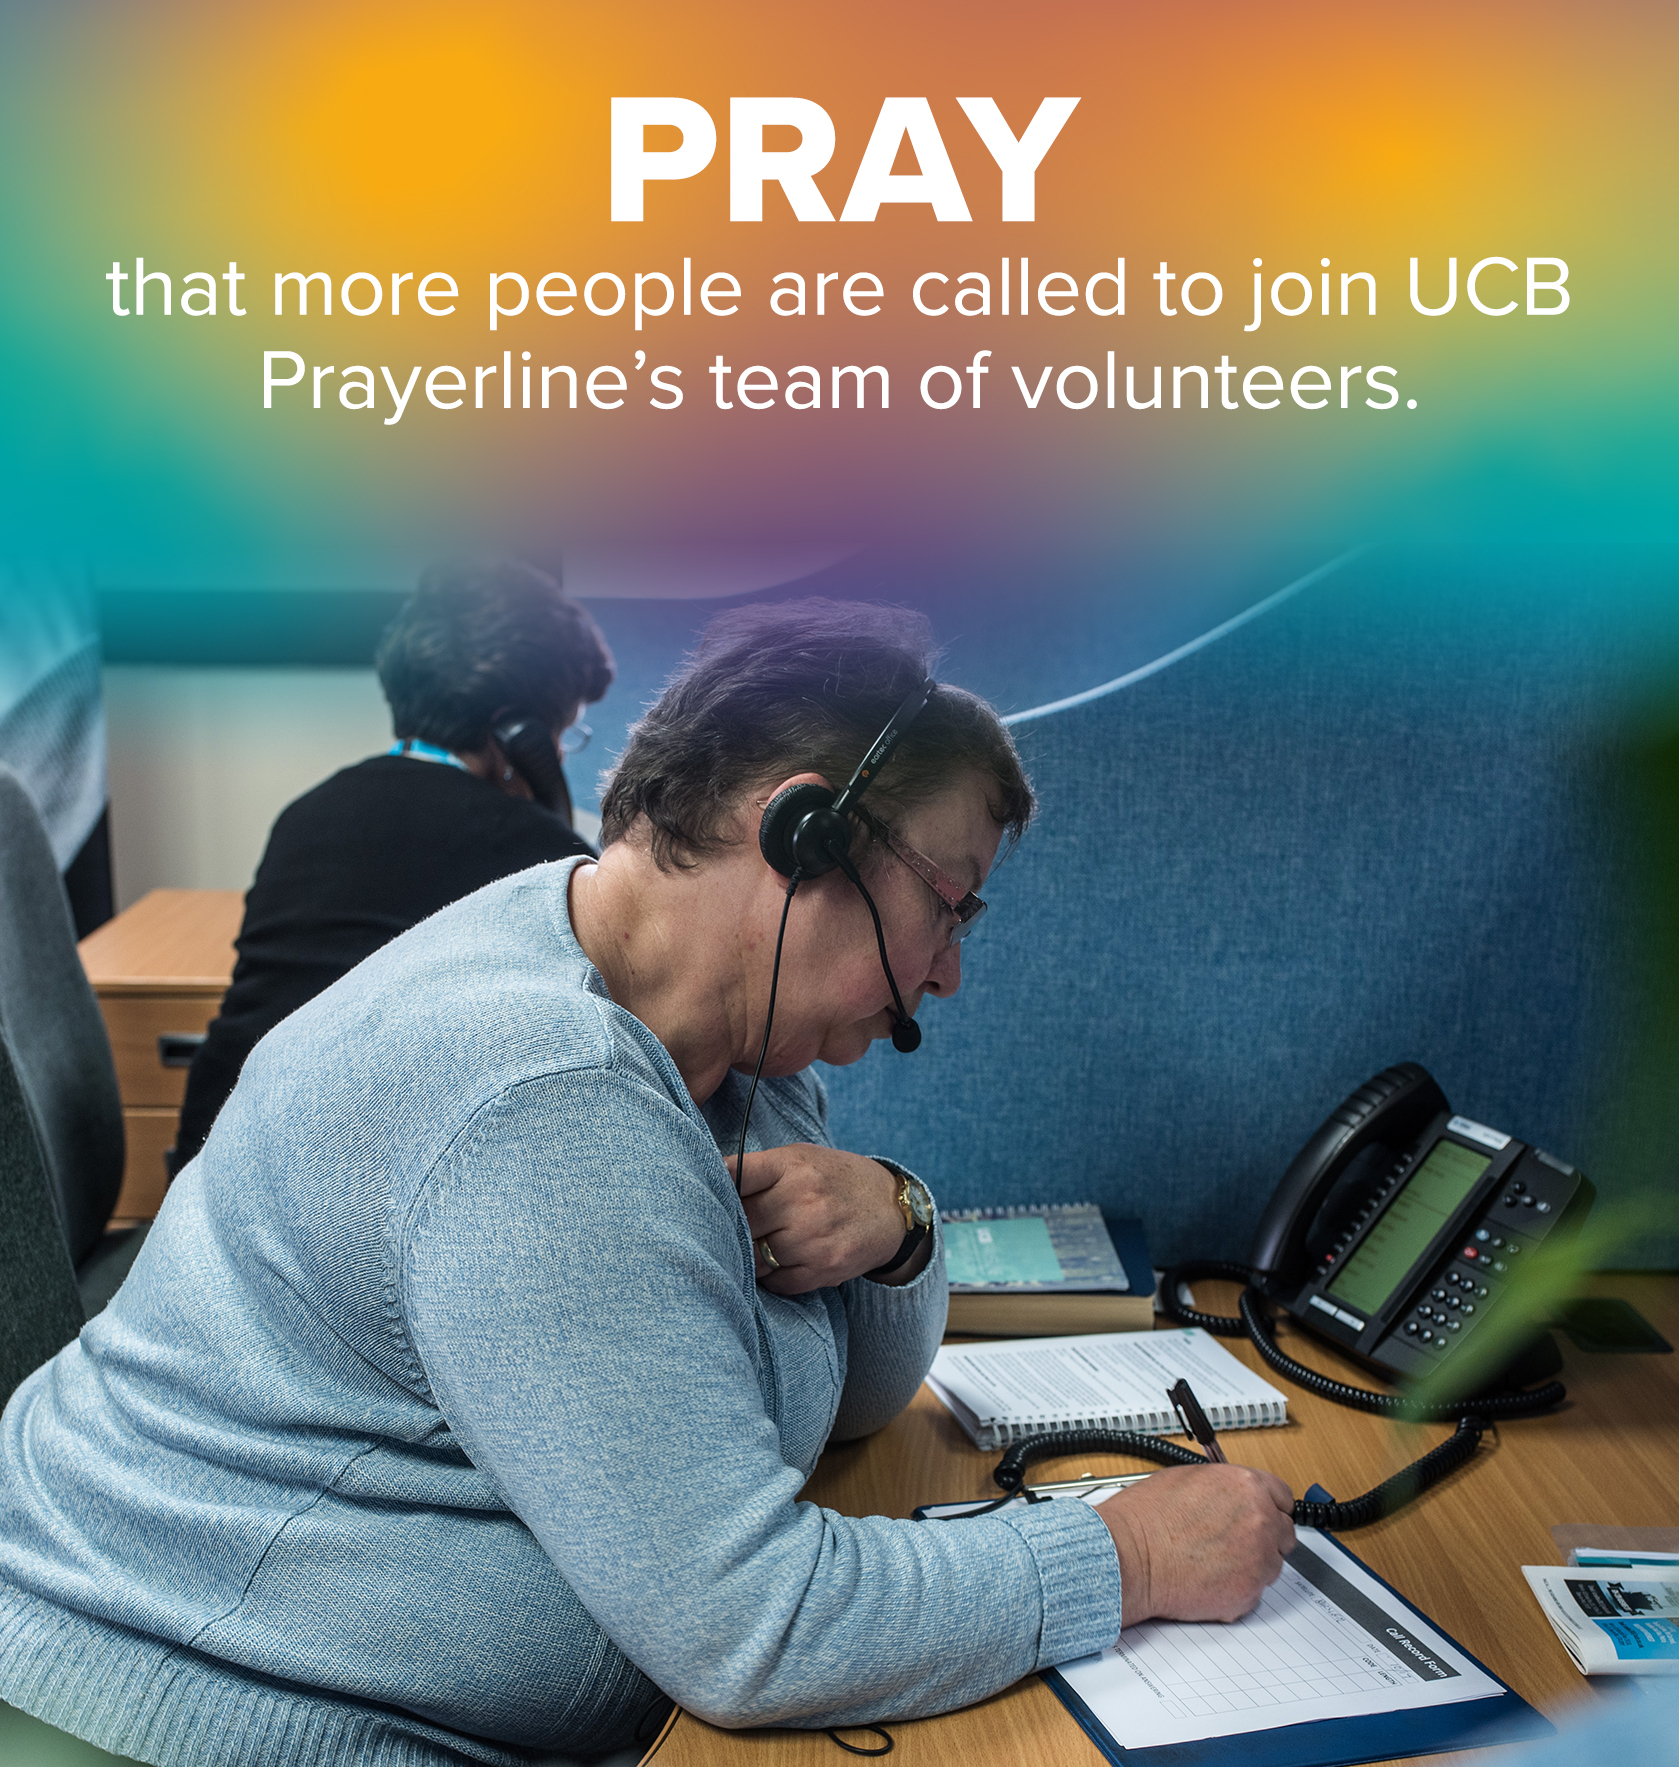 Pray that more people are called to join UCB Prayerline's team of volunteers